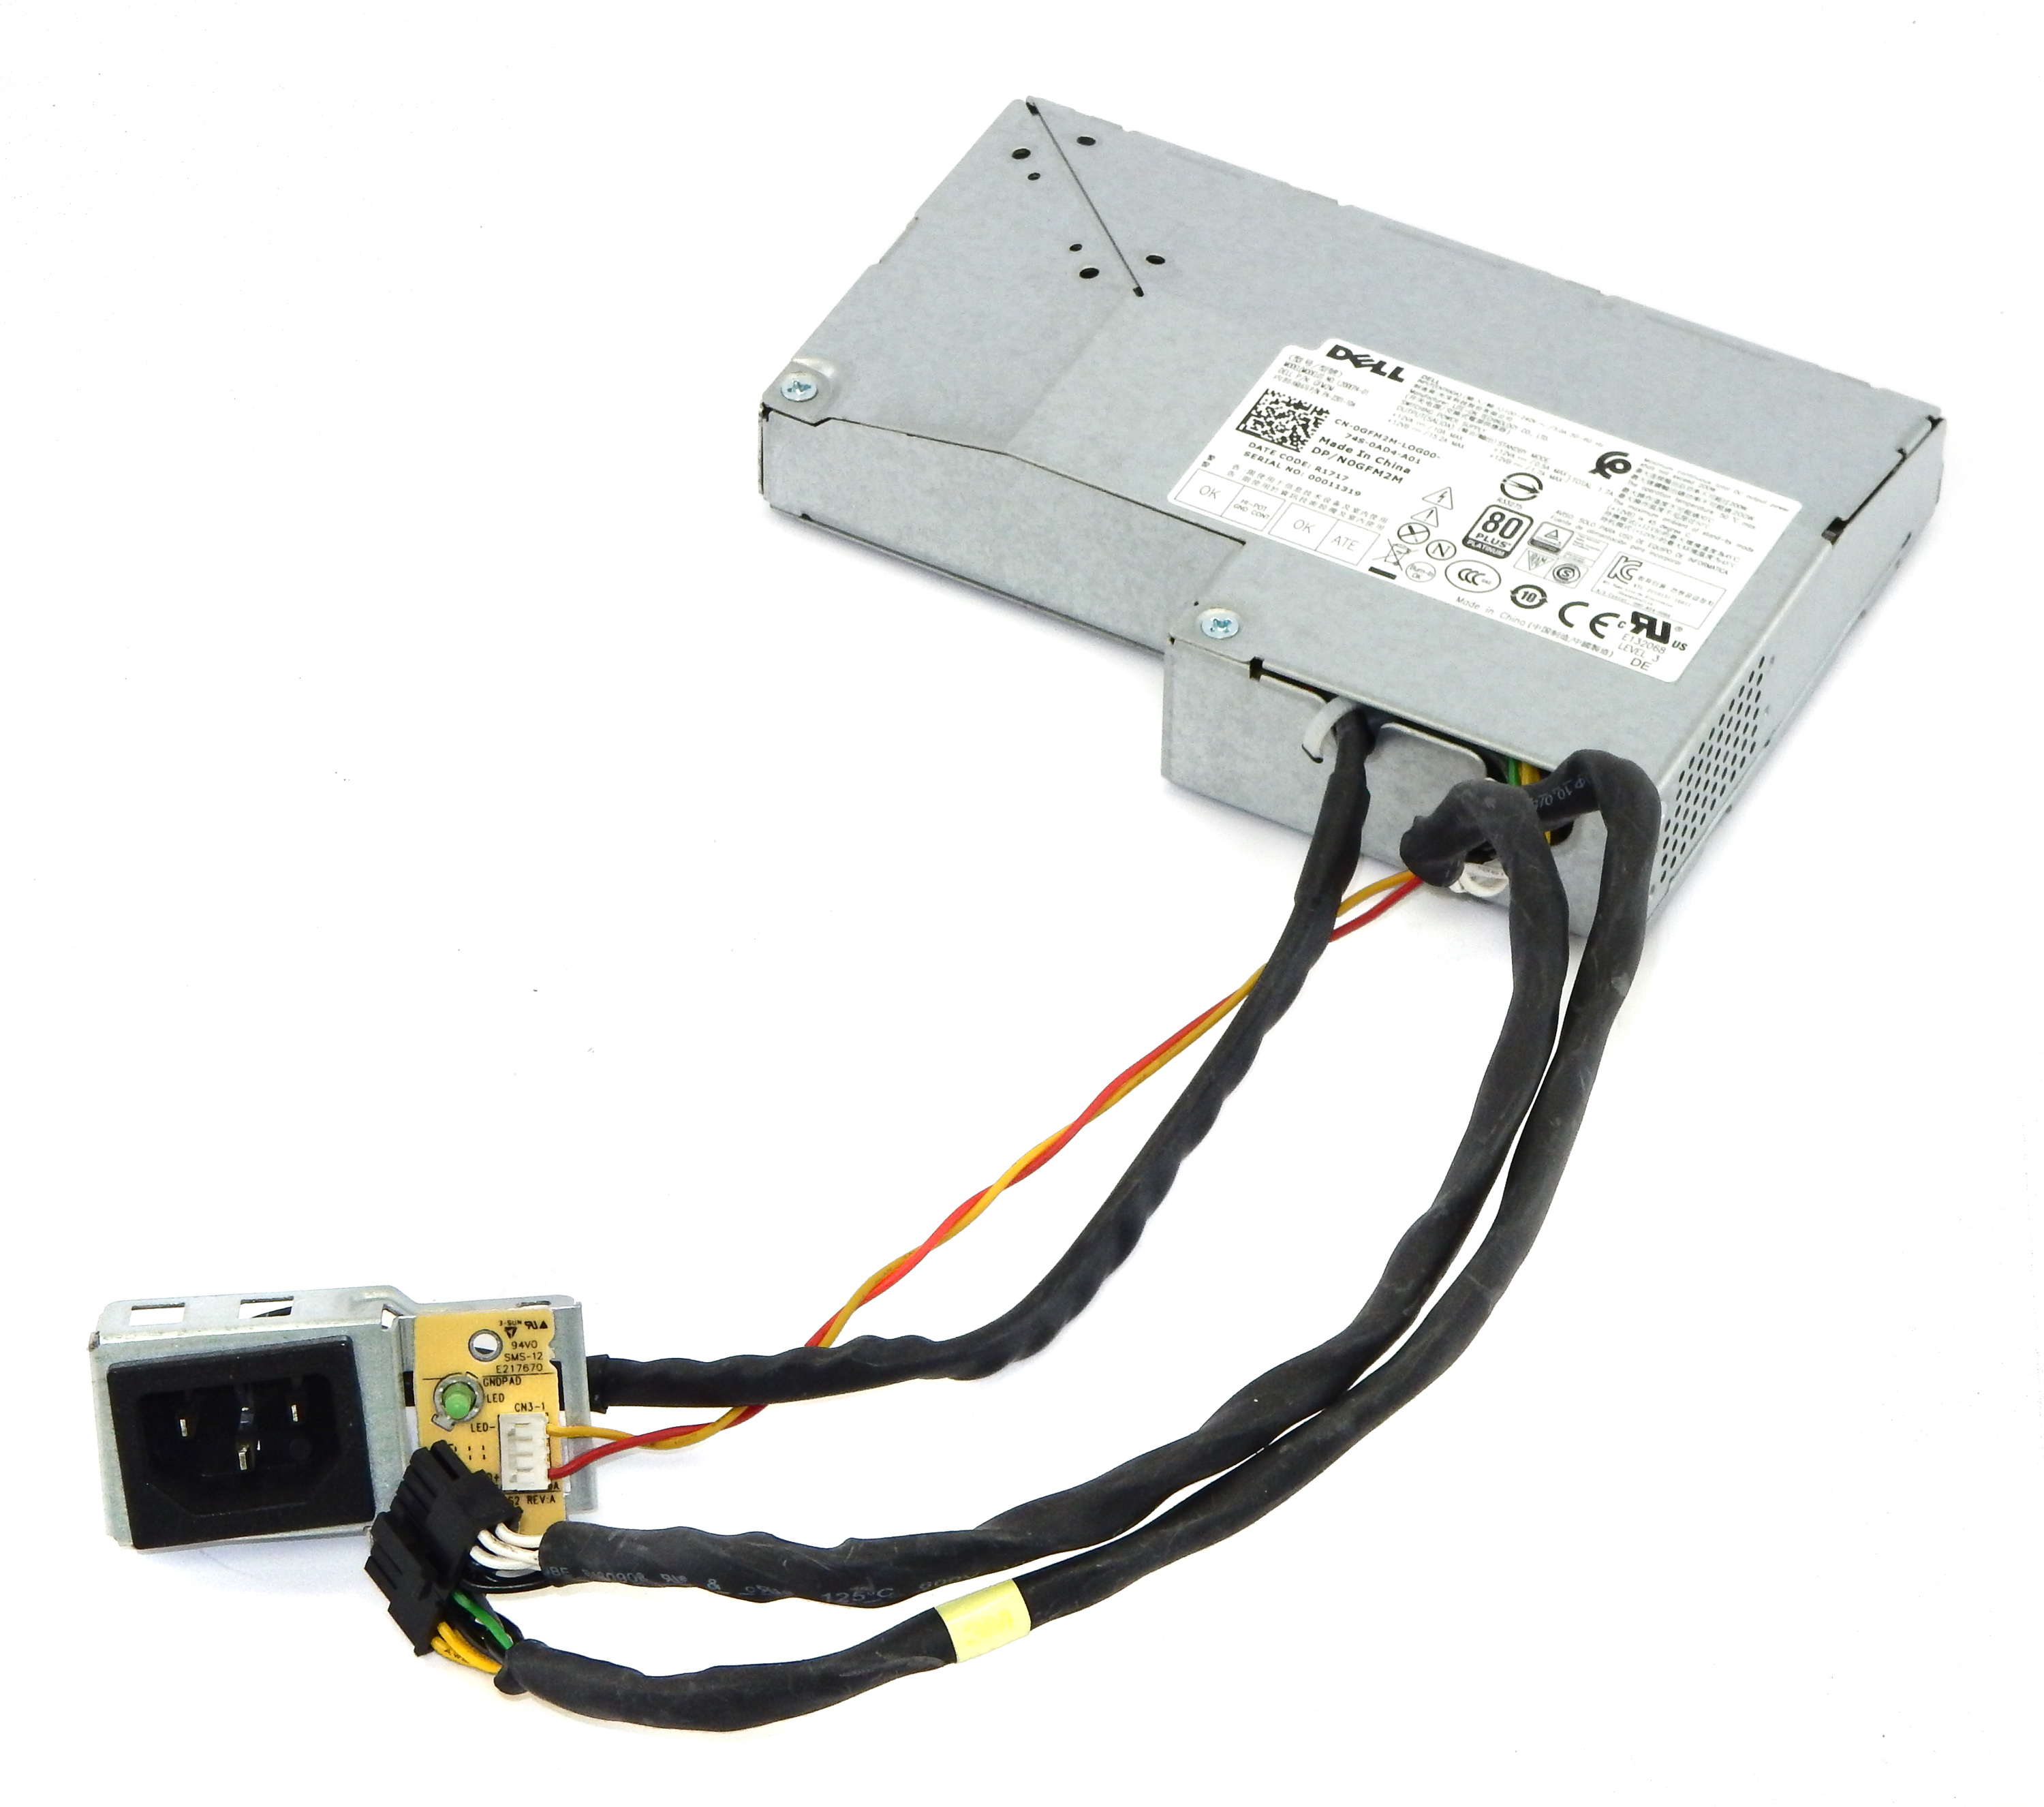 Dell GFM2M OptiPlex 7450 AIO 200W Power Supply L200EPA-01